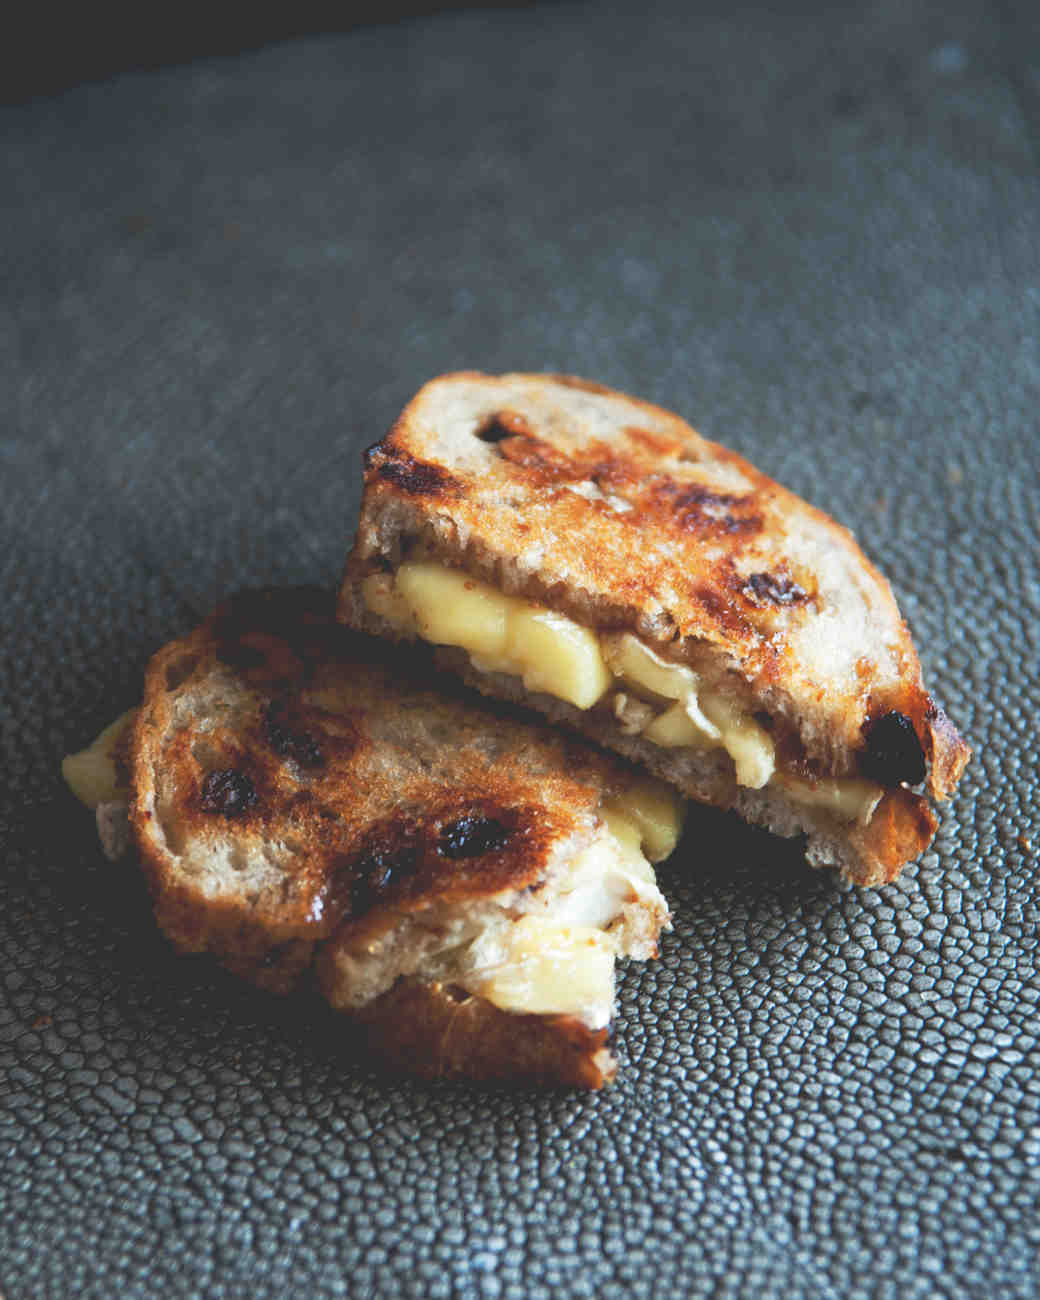 claire-thomas-valentines-day-lunch-grilled-cheese-2-0215.jpg